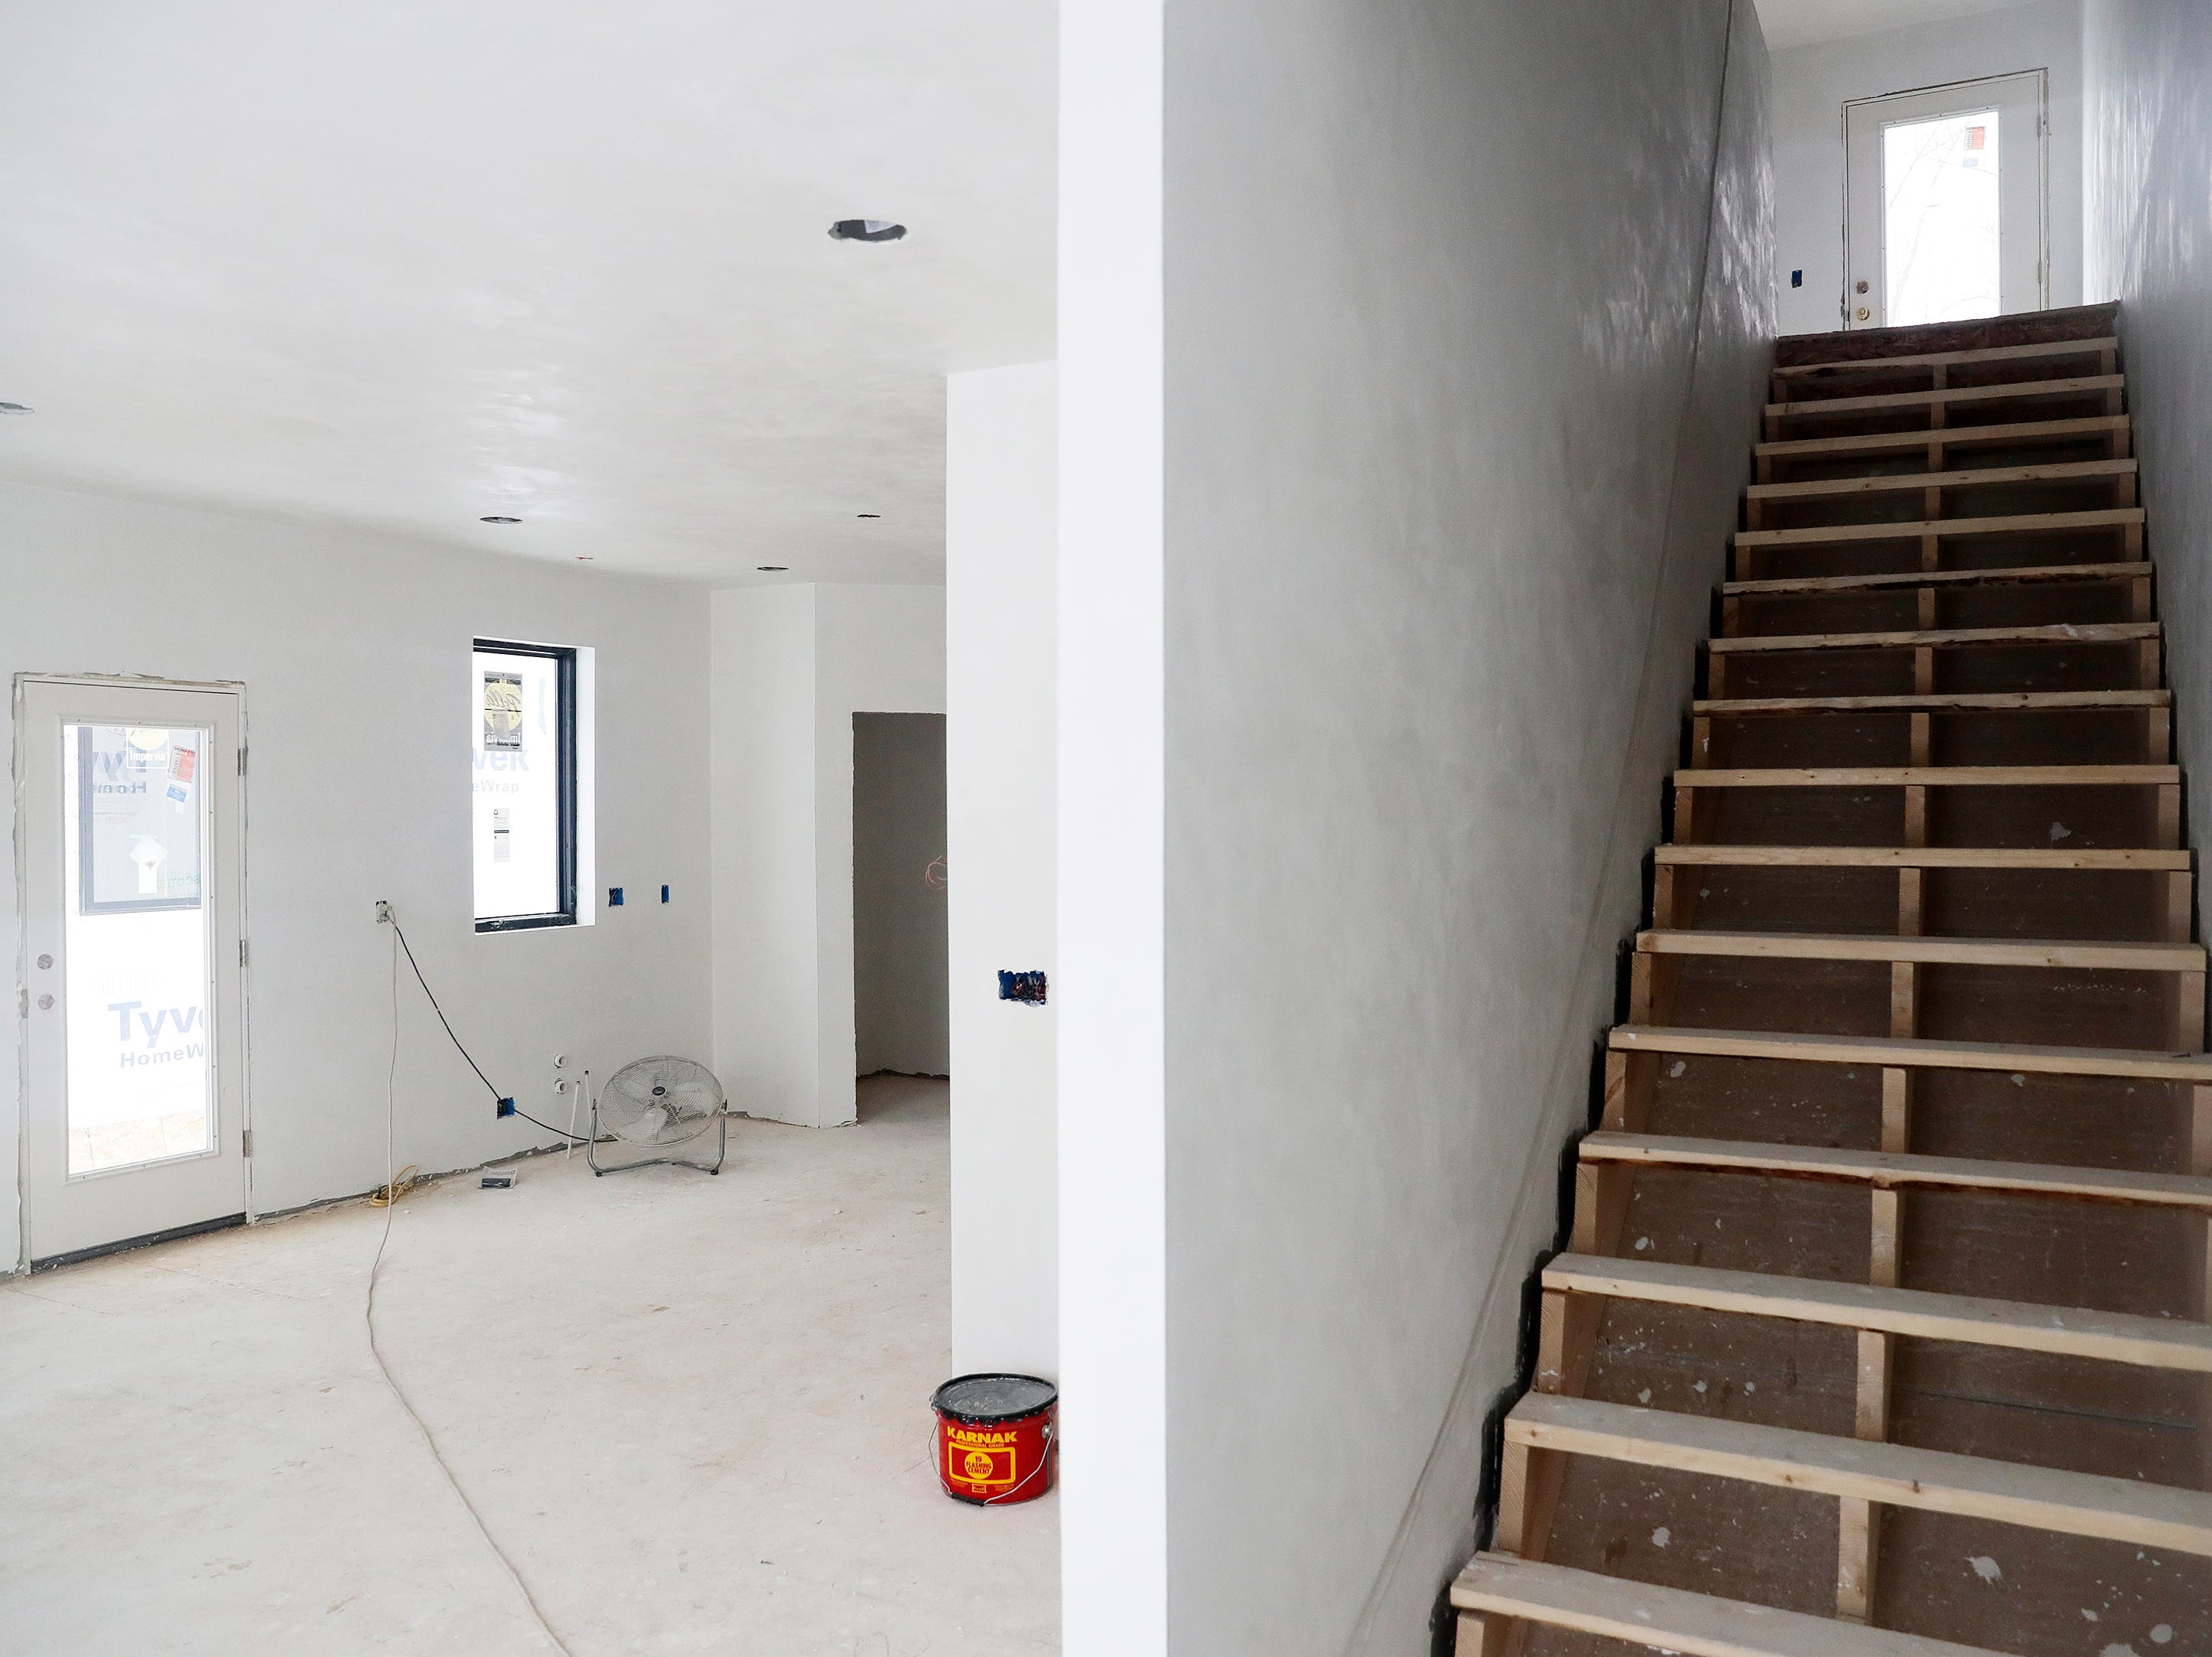 The living room is shown from the entryway of one of the under-construction townhouses on the corner of Van Buren and Cherry streets on Tuesday, February 26, 2019 in Green Bay, Wis.